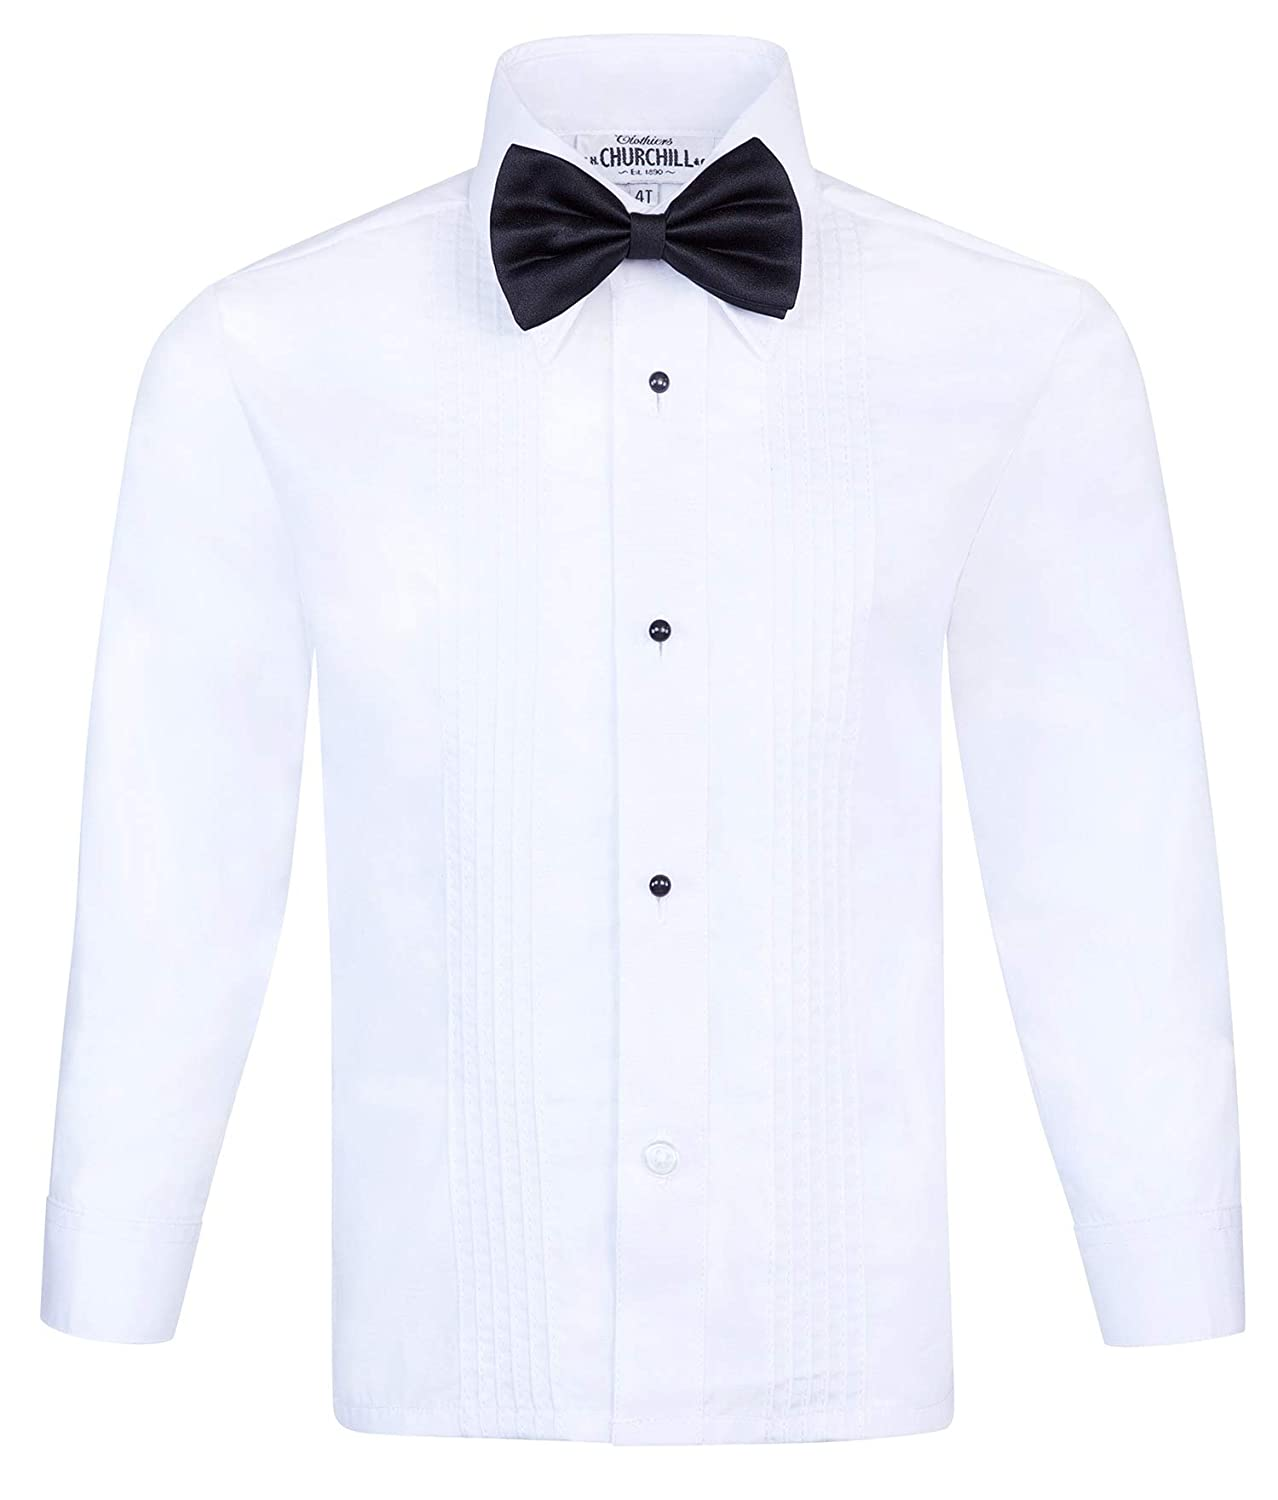 S.H. Churchill & Co. Boy's White Tuxedo Shirt with Bow Tie and Studs